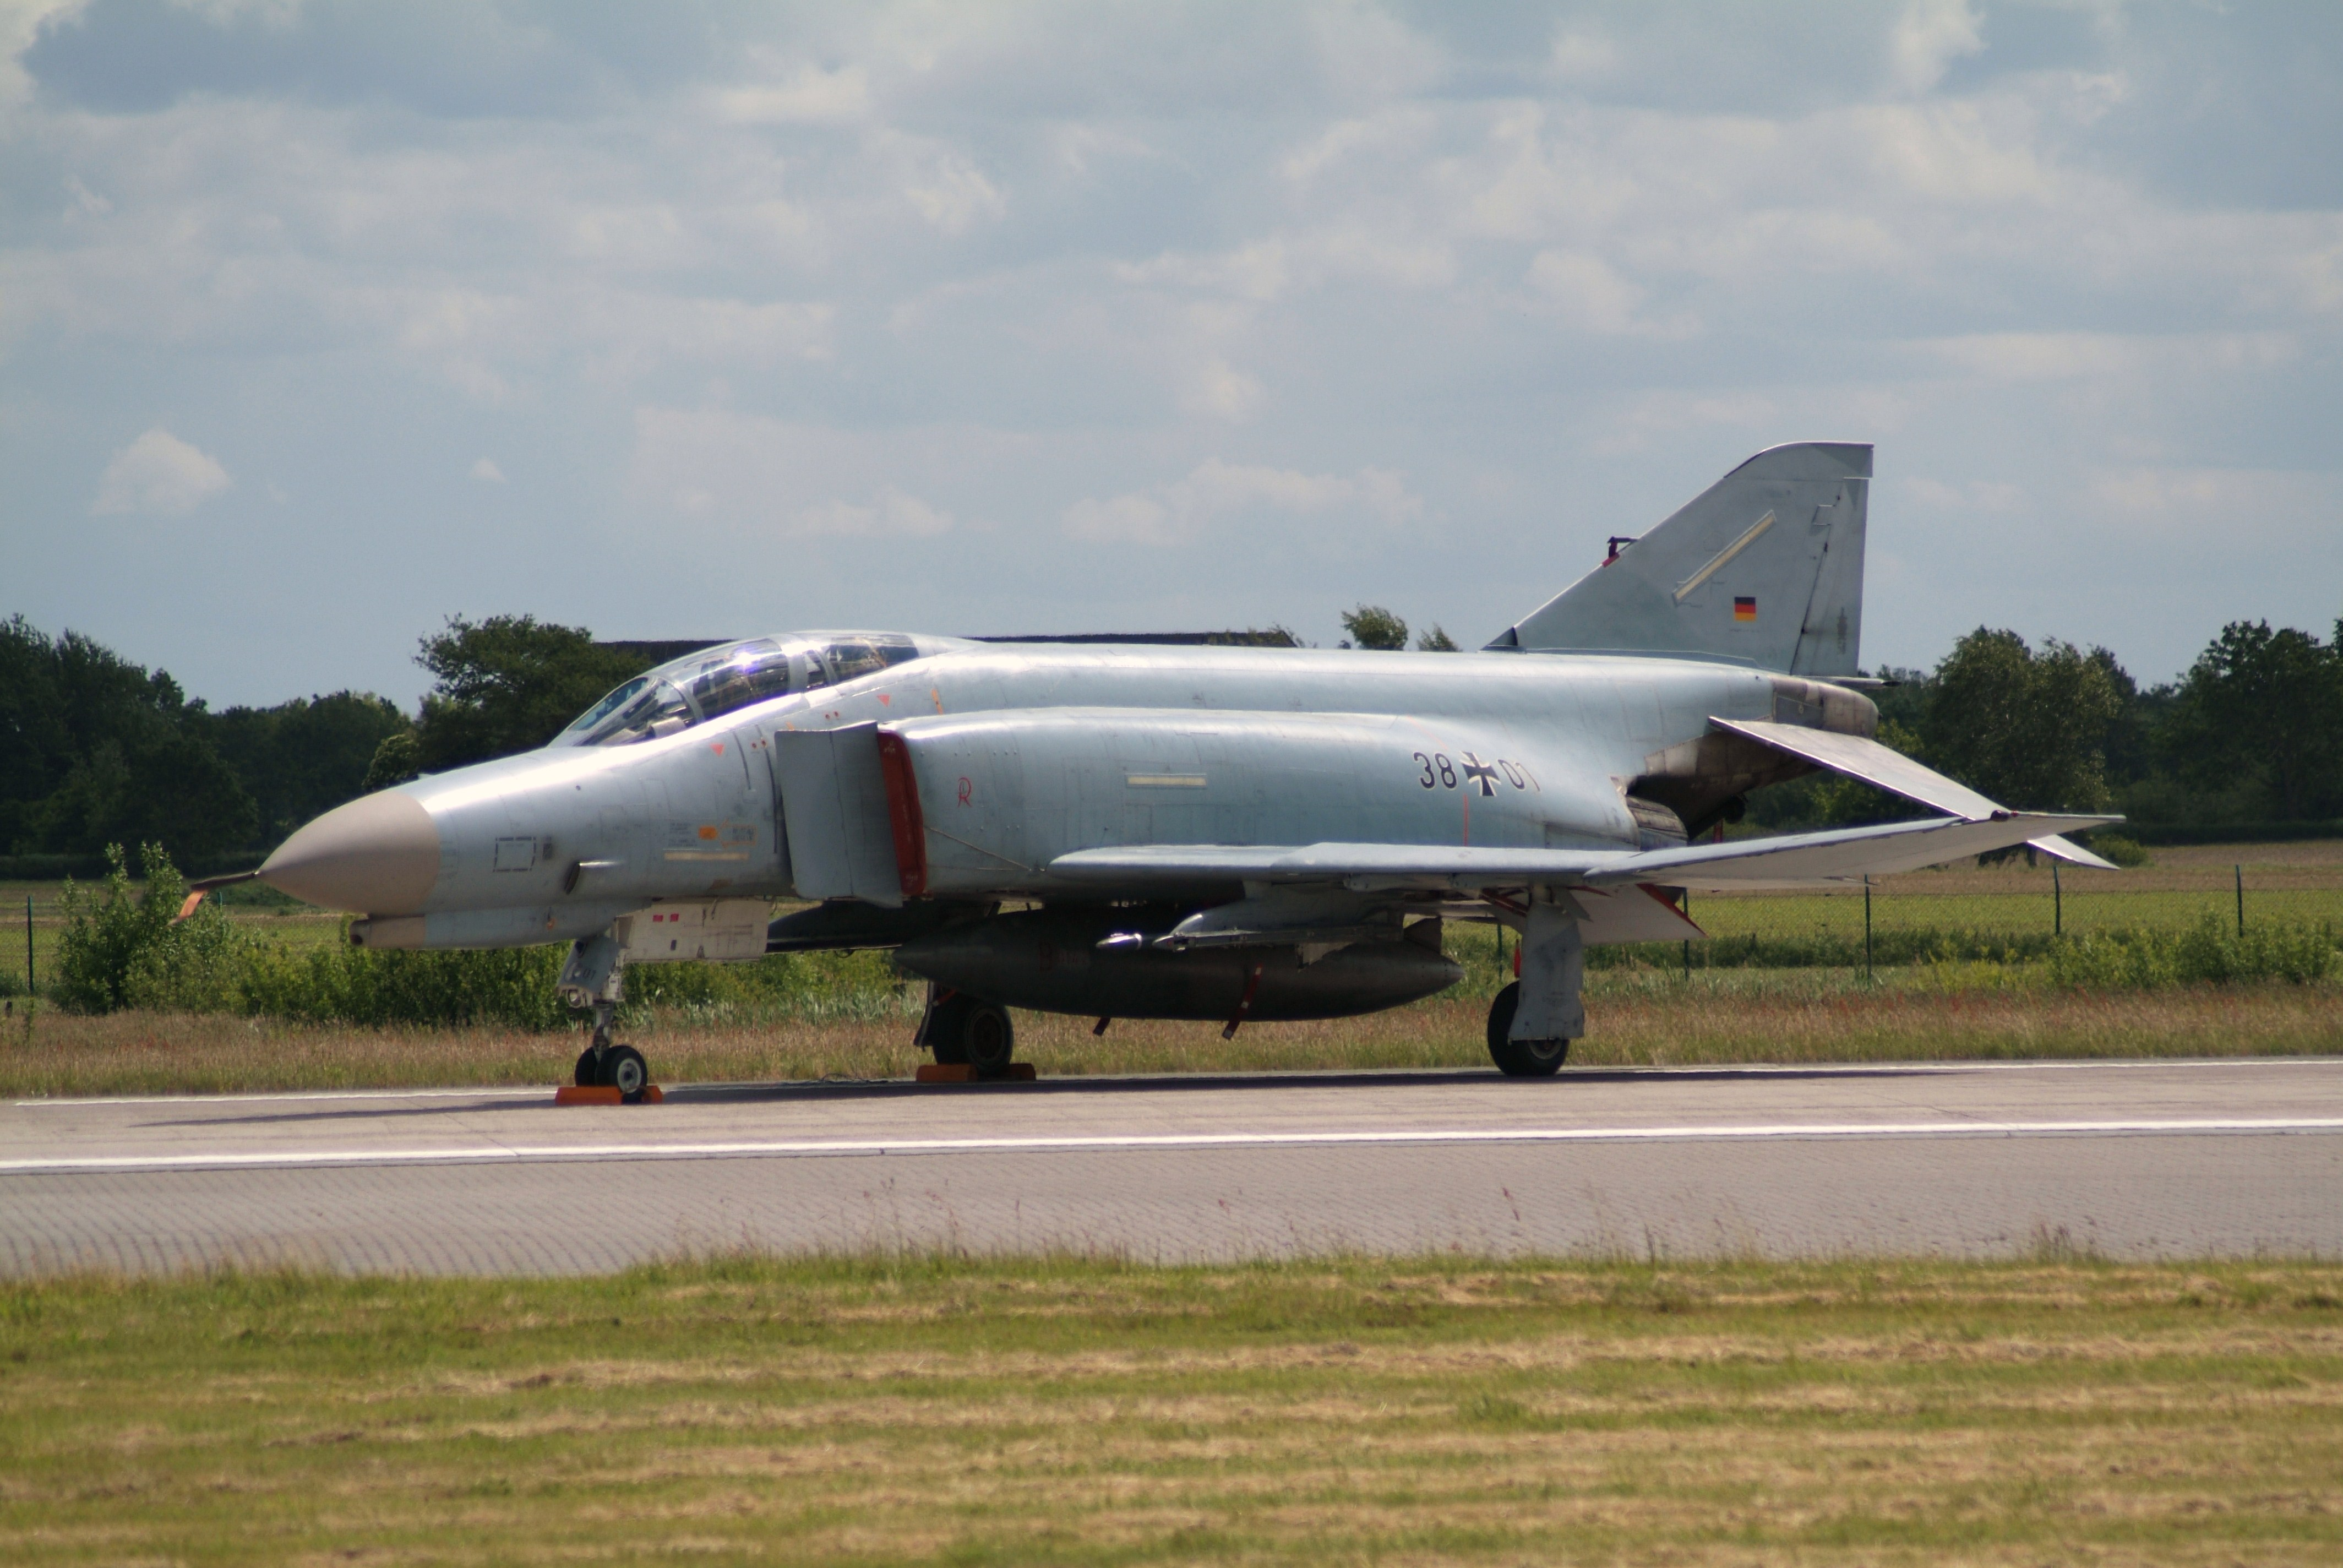 wittmund gay singles We would like to show you a description here but the site won't allow us.